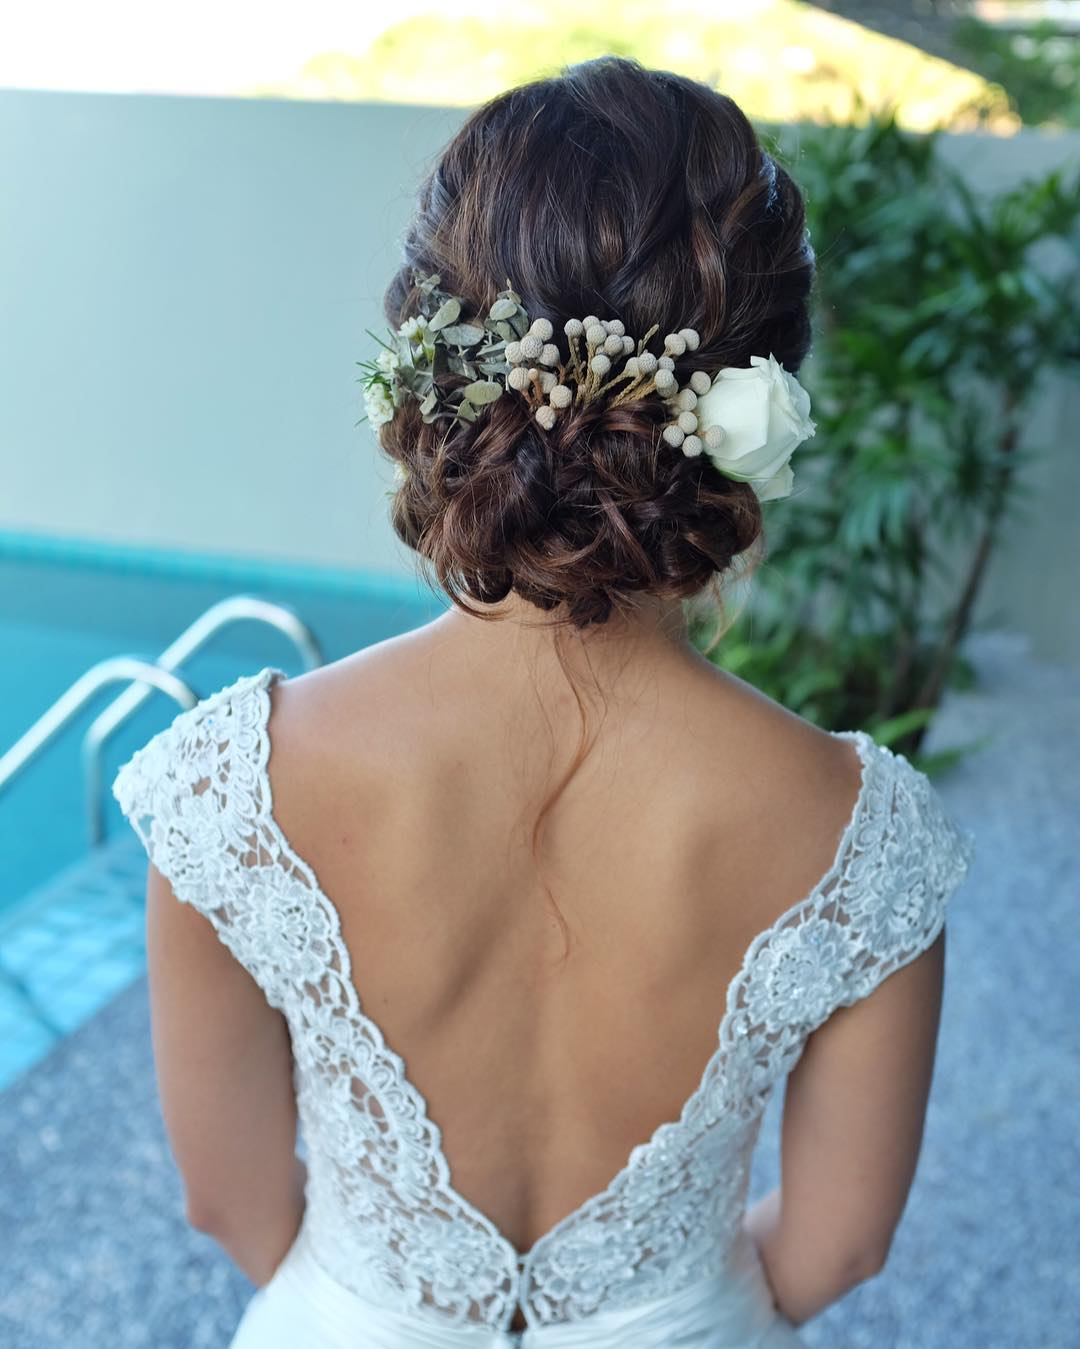 30+ Beach Wedding Hairstyles Ideas, Designs